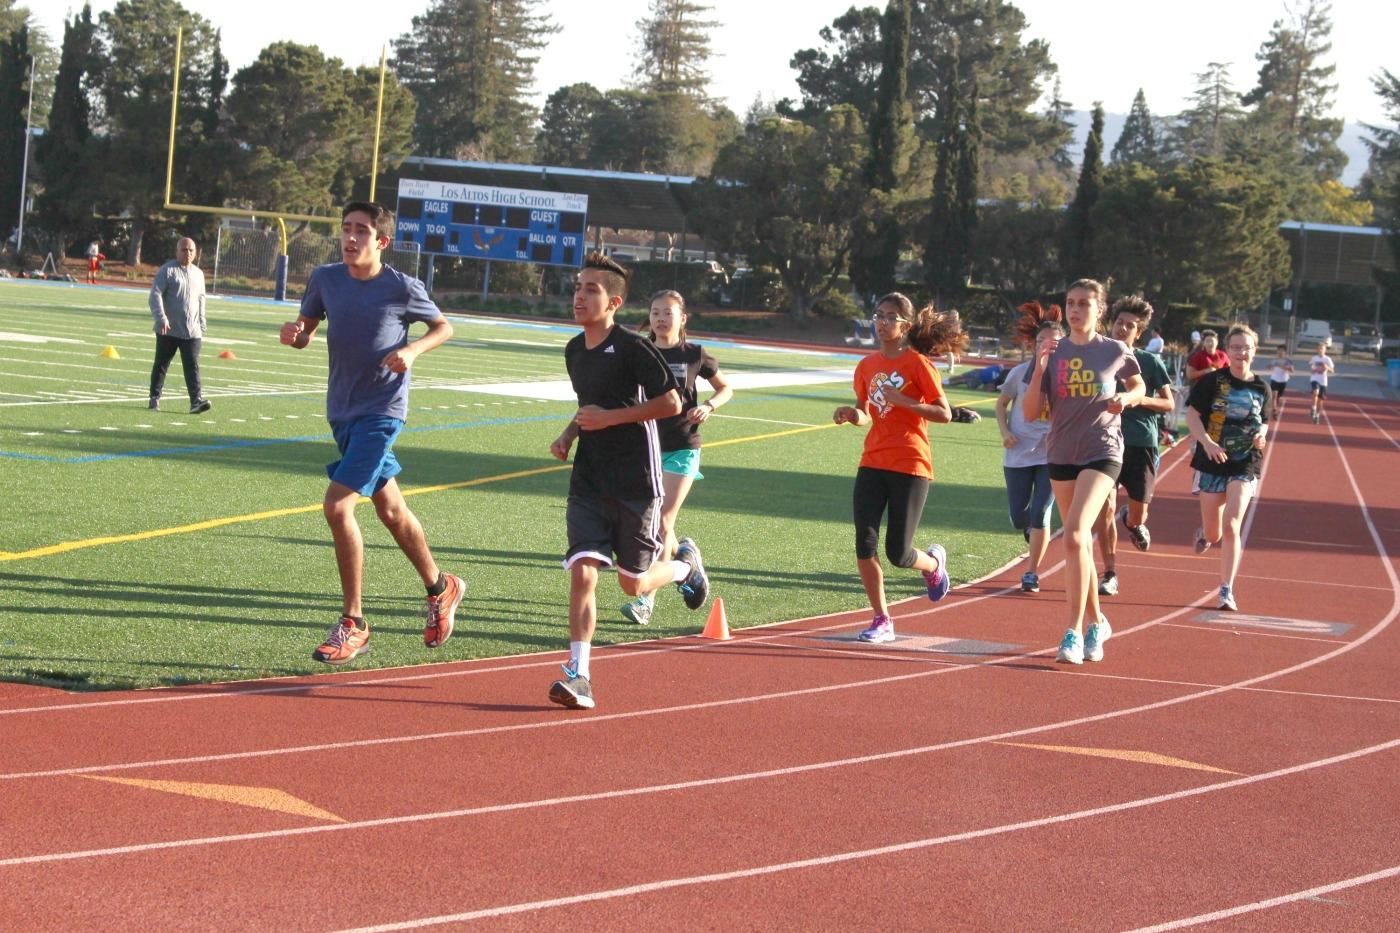 Members of the boys and girls track and field teams run laps during  practice. Both teams are optimistic for the coming season and are confident that they can achieve good results. Photo by Allegra Maeso.